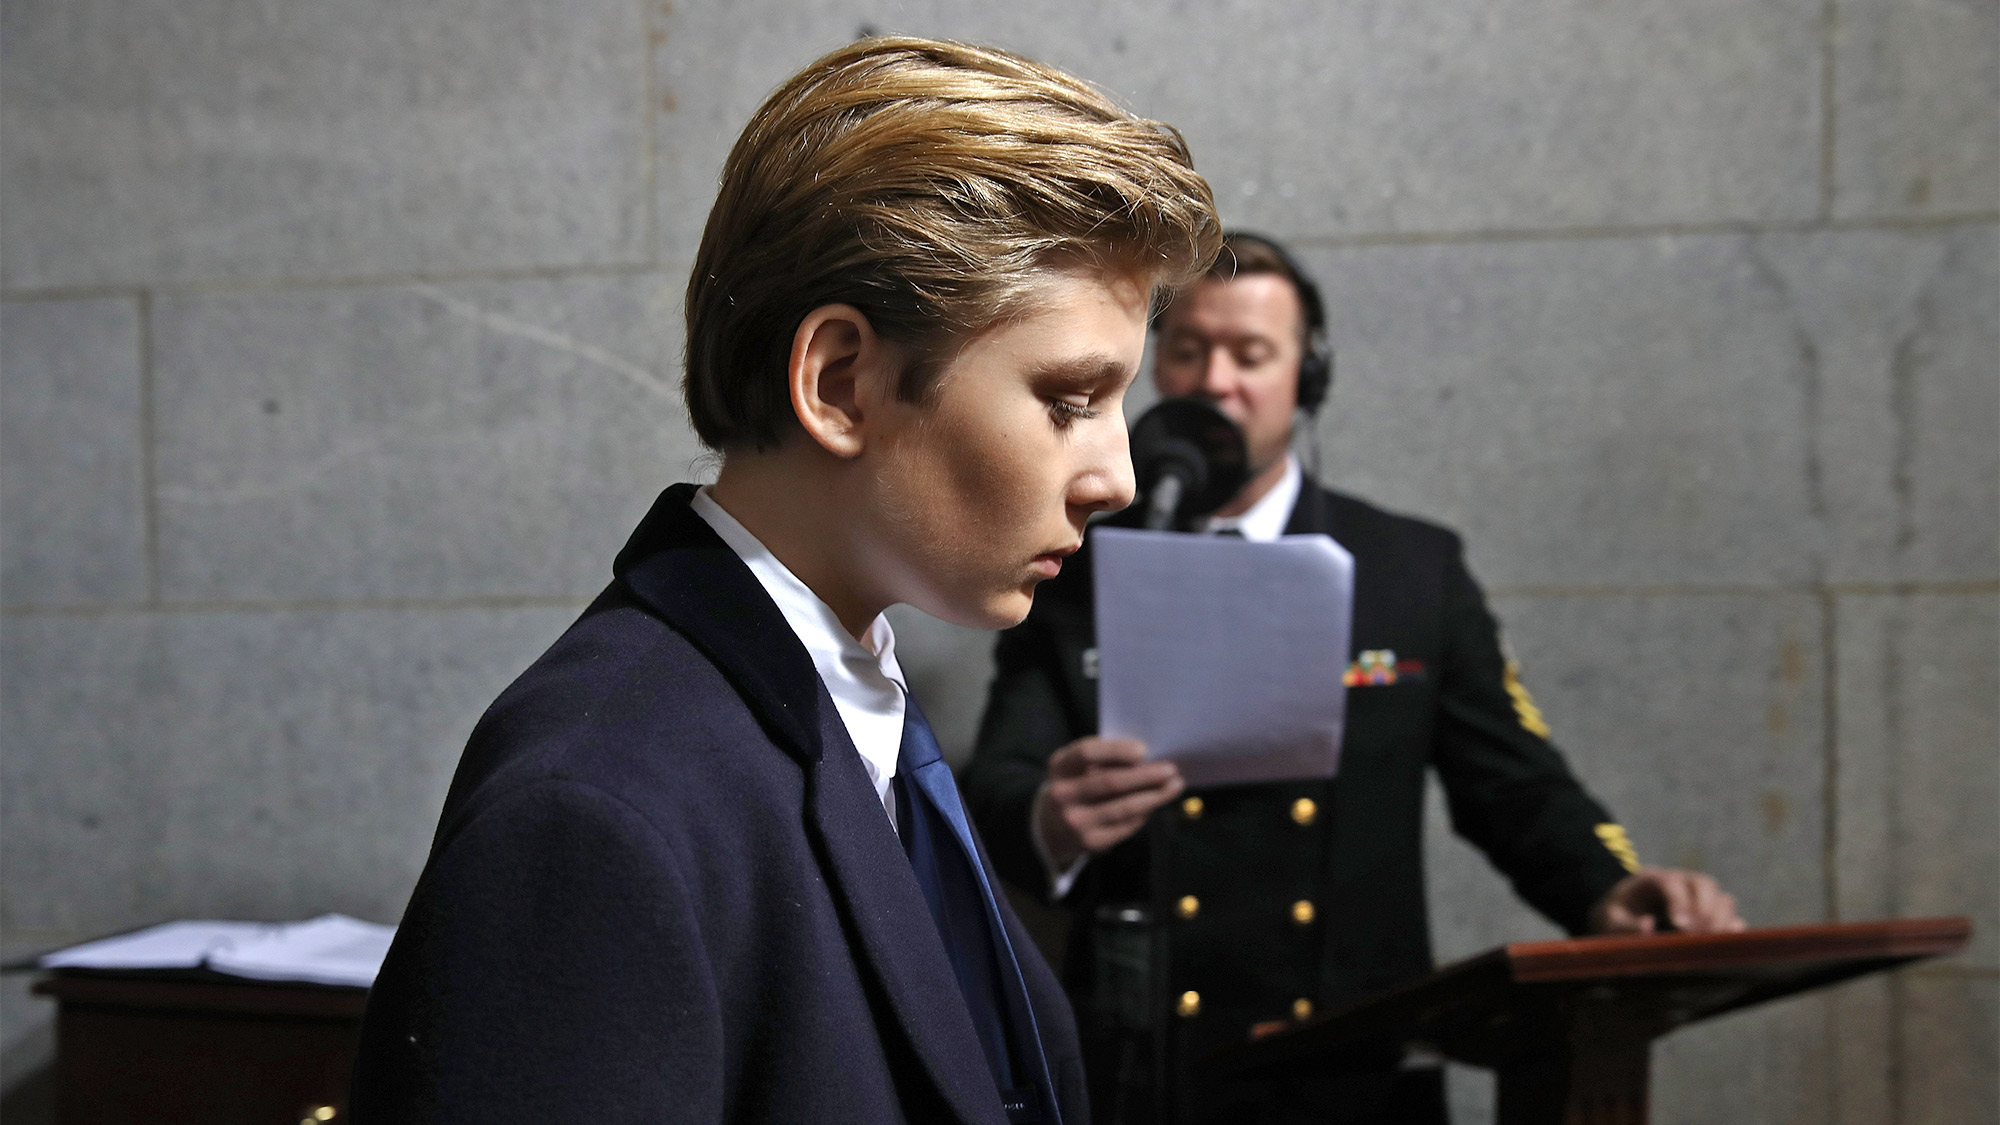 Report: Barron Trump Is Being VICIOUSLY Bullied At School